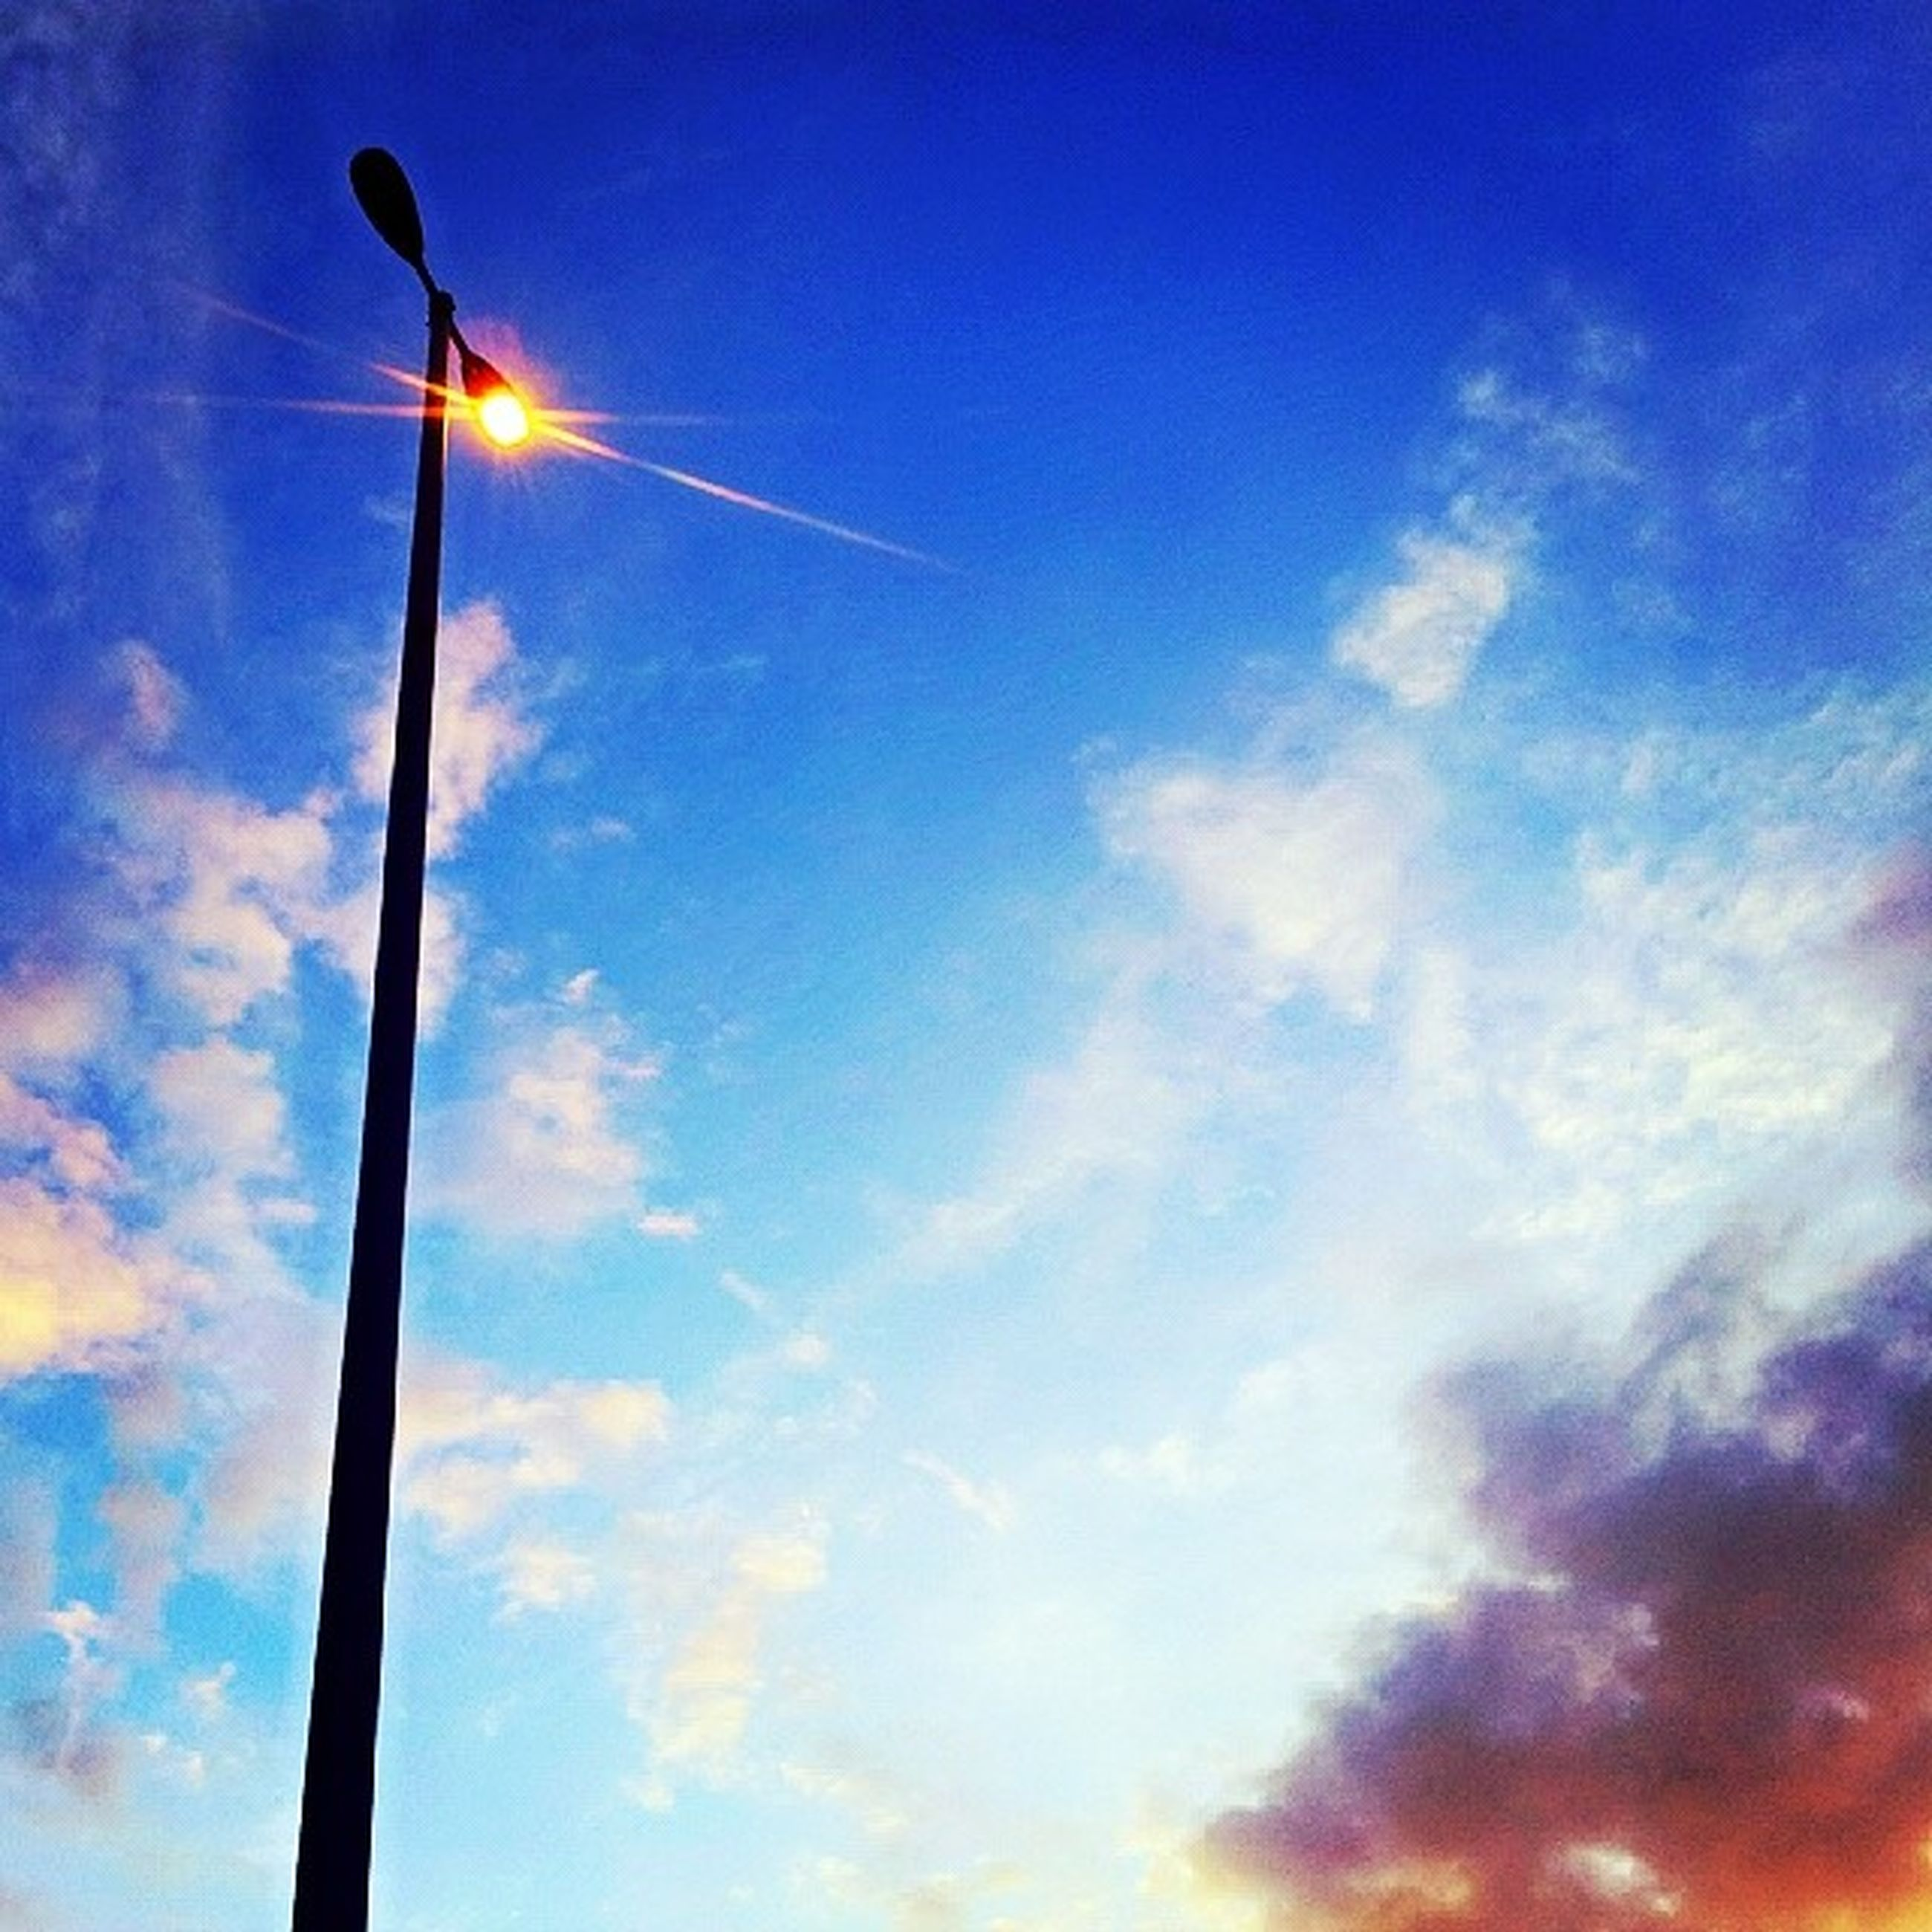 low angle view, street light, sky, lighting equipment, blue, cloud - sky, sun, electricity, pole, tranquility, sunbeam, sunlight, nature, beauty in nature, lens flare, scenics, cloud, vapor trail, outdoors, tranquil scene